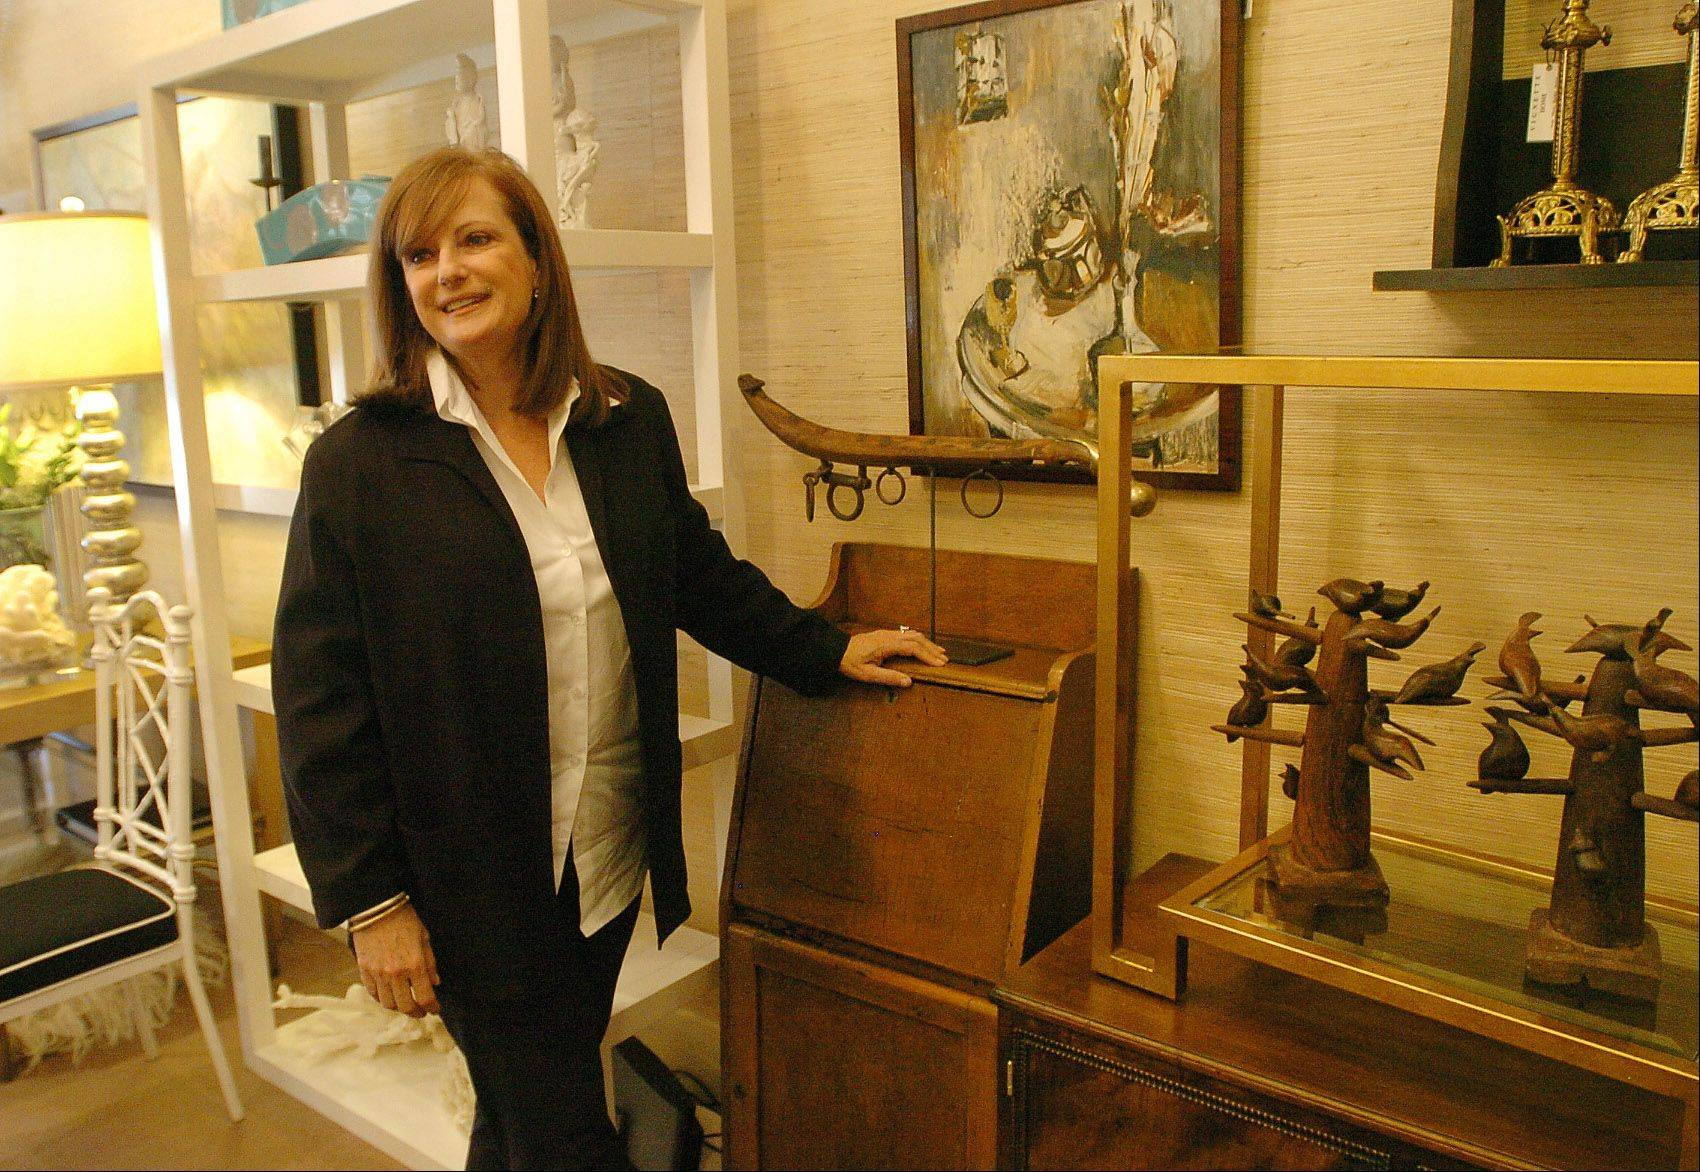 Designer Missie Bender in her shop in Glencoe called Vignette Home, with an early American telephone cabinet picked from Indiana, and hand-carved American folk art birds from Michigan.